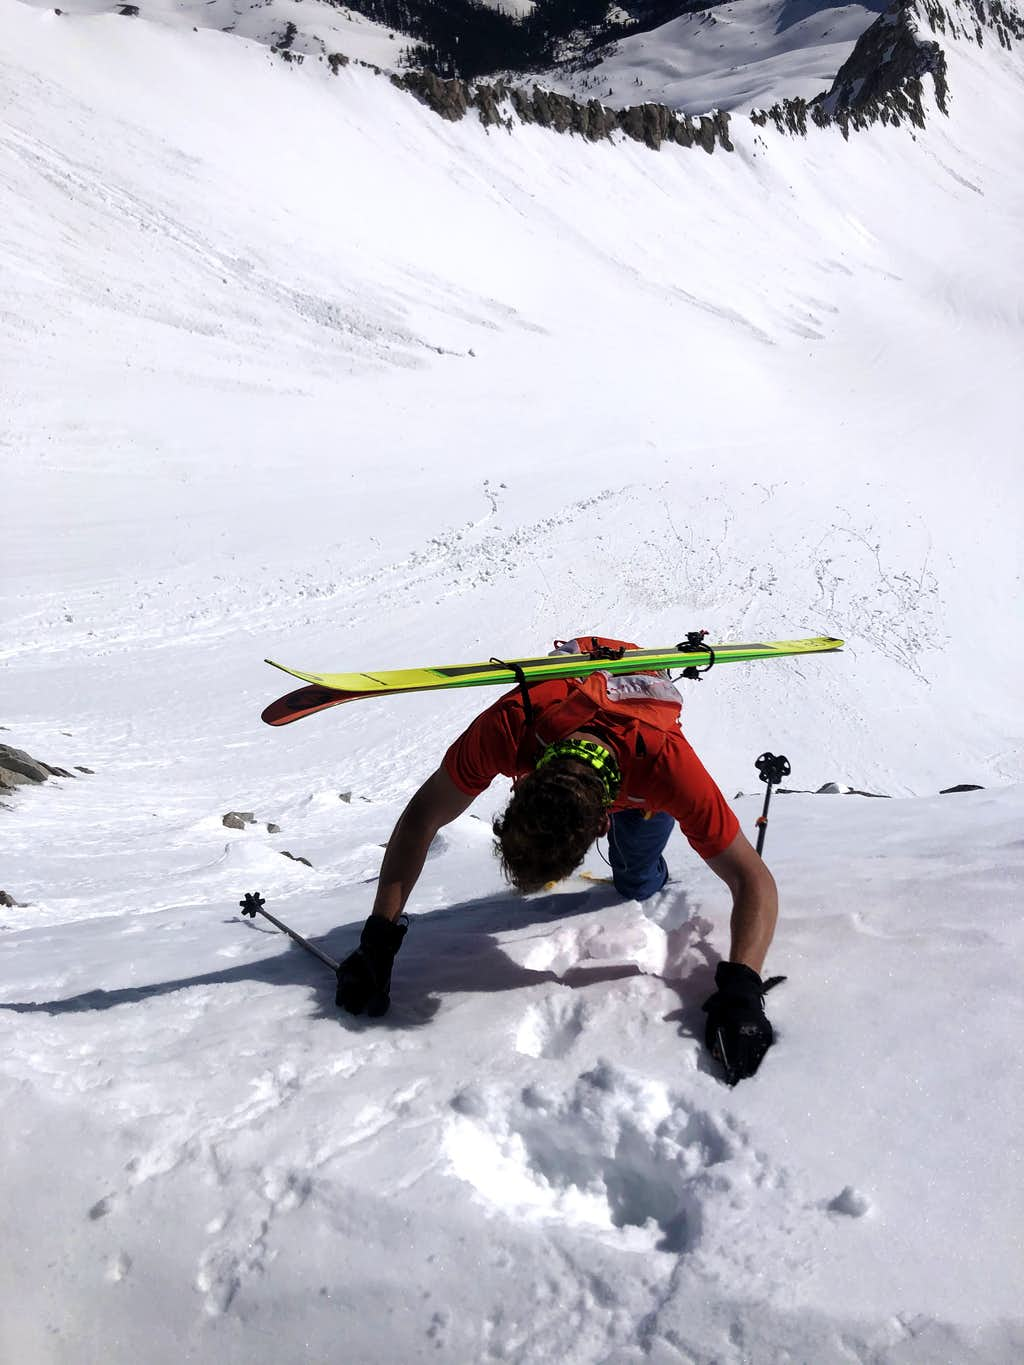 Downclimbing from Snowmass